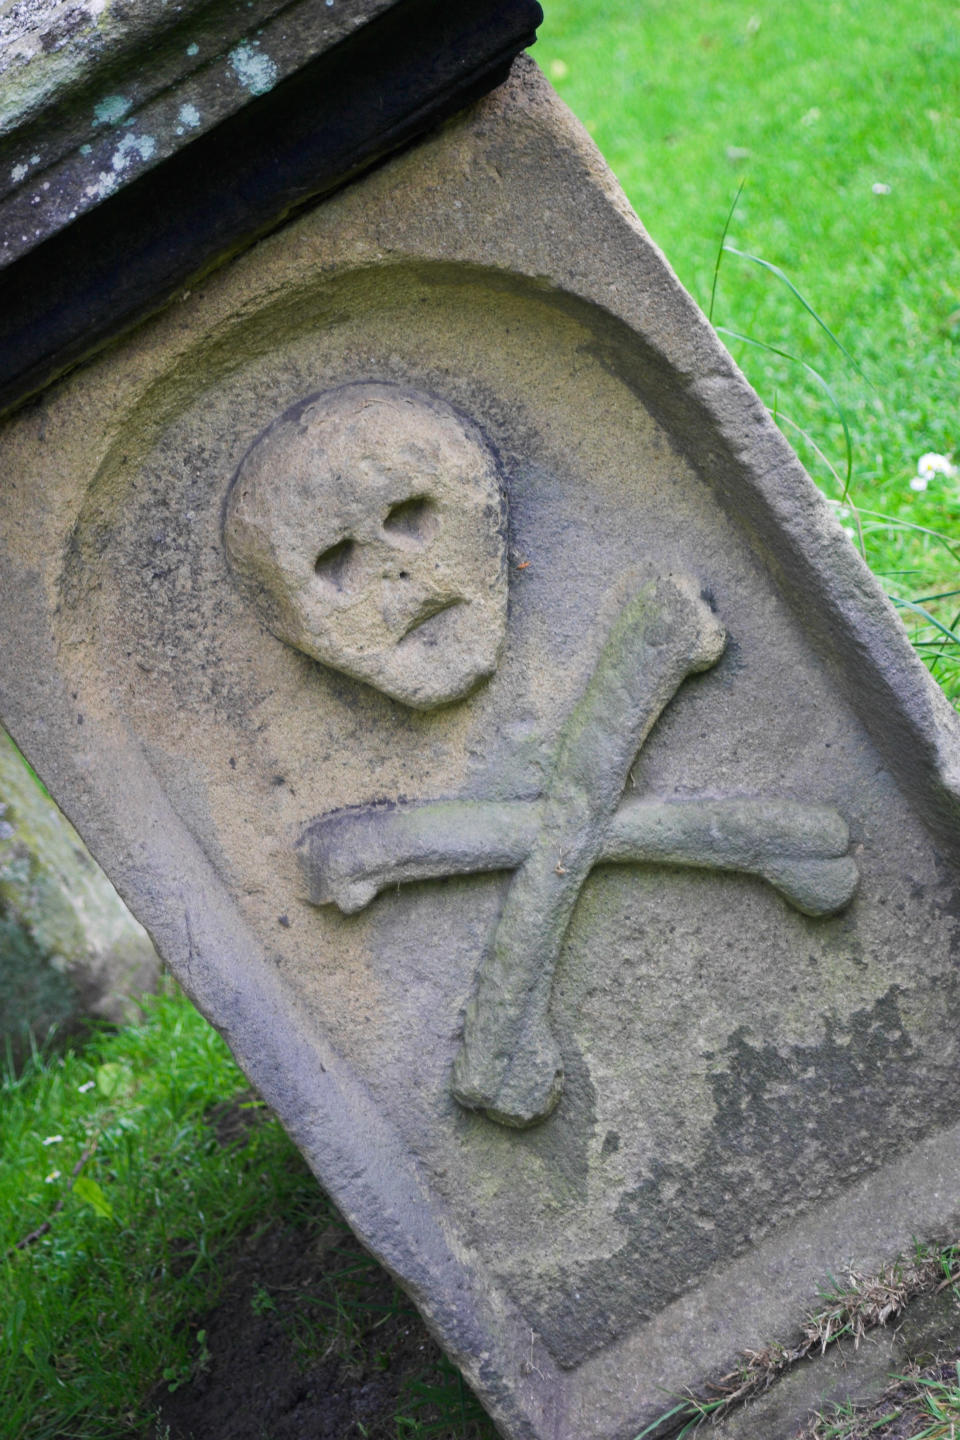 Tomb with skull and cross bones on it in the graveyard of Saint Lawrence's Church Eyam, Derbyshire. (Photo by: MyLoupe/Universal Images Group via Getty Images)